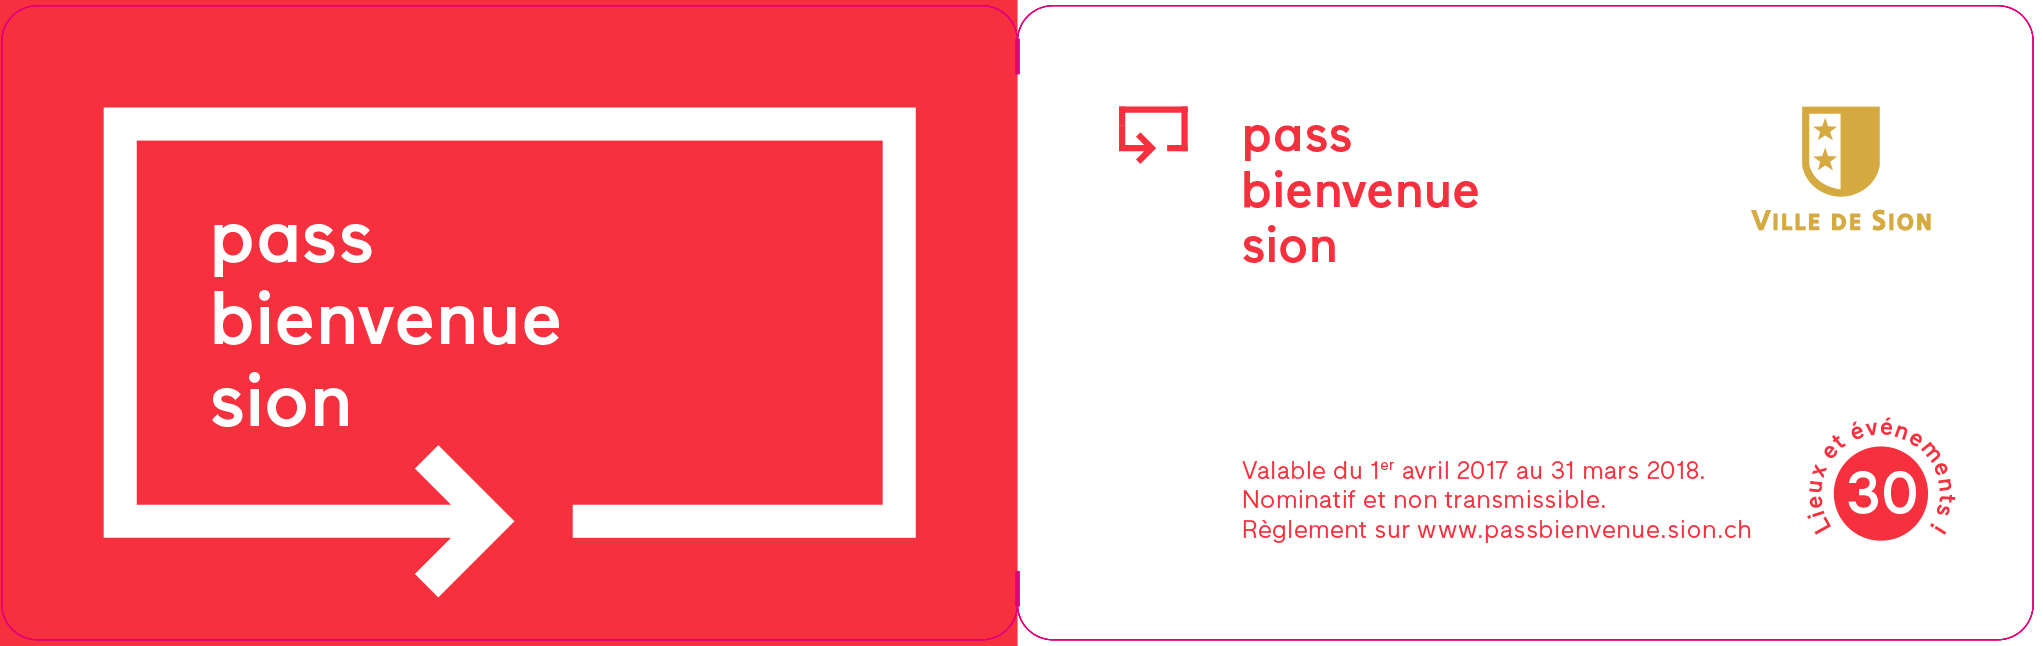 PB Pass Bienvenue carte A4 20170314